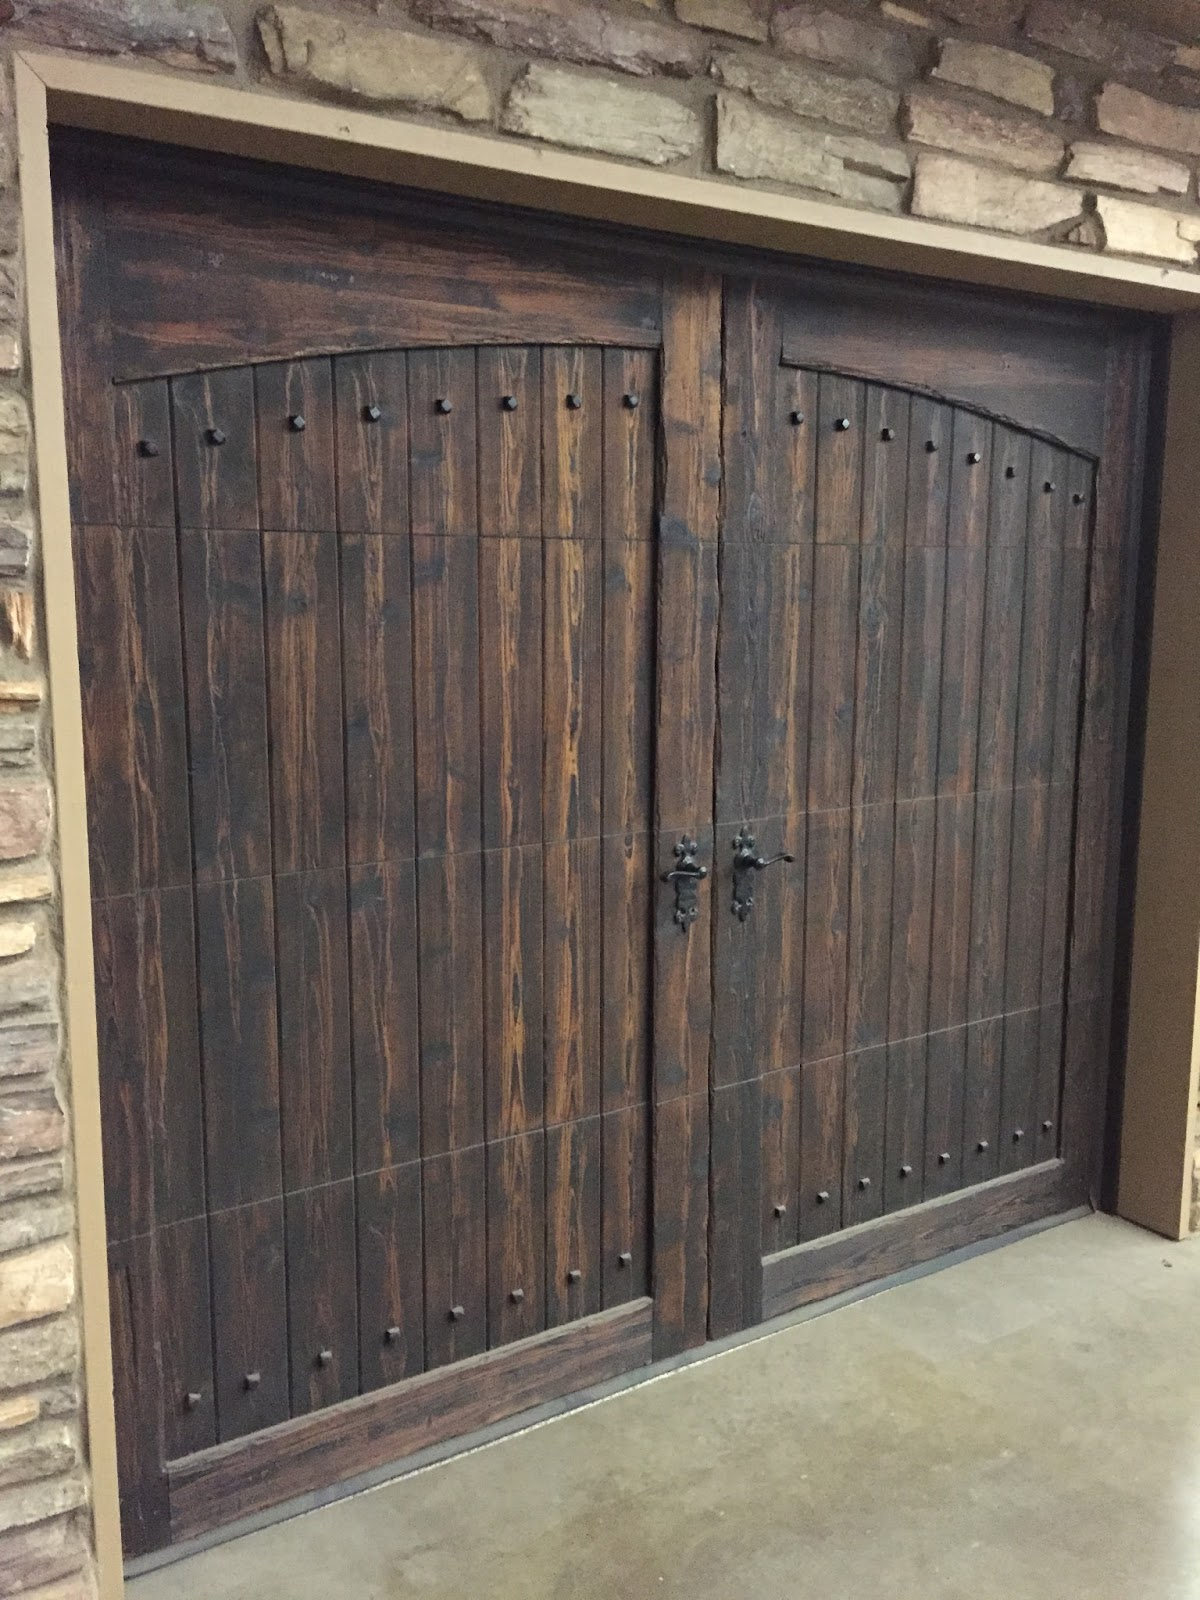 Antique Wood Garage Doors - Custom Garage Doors Arizona & Colorado